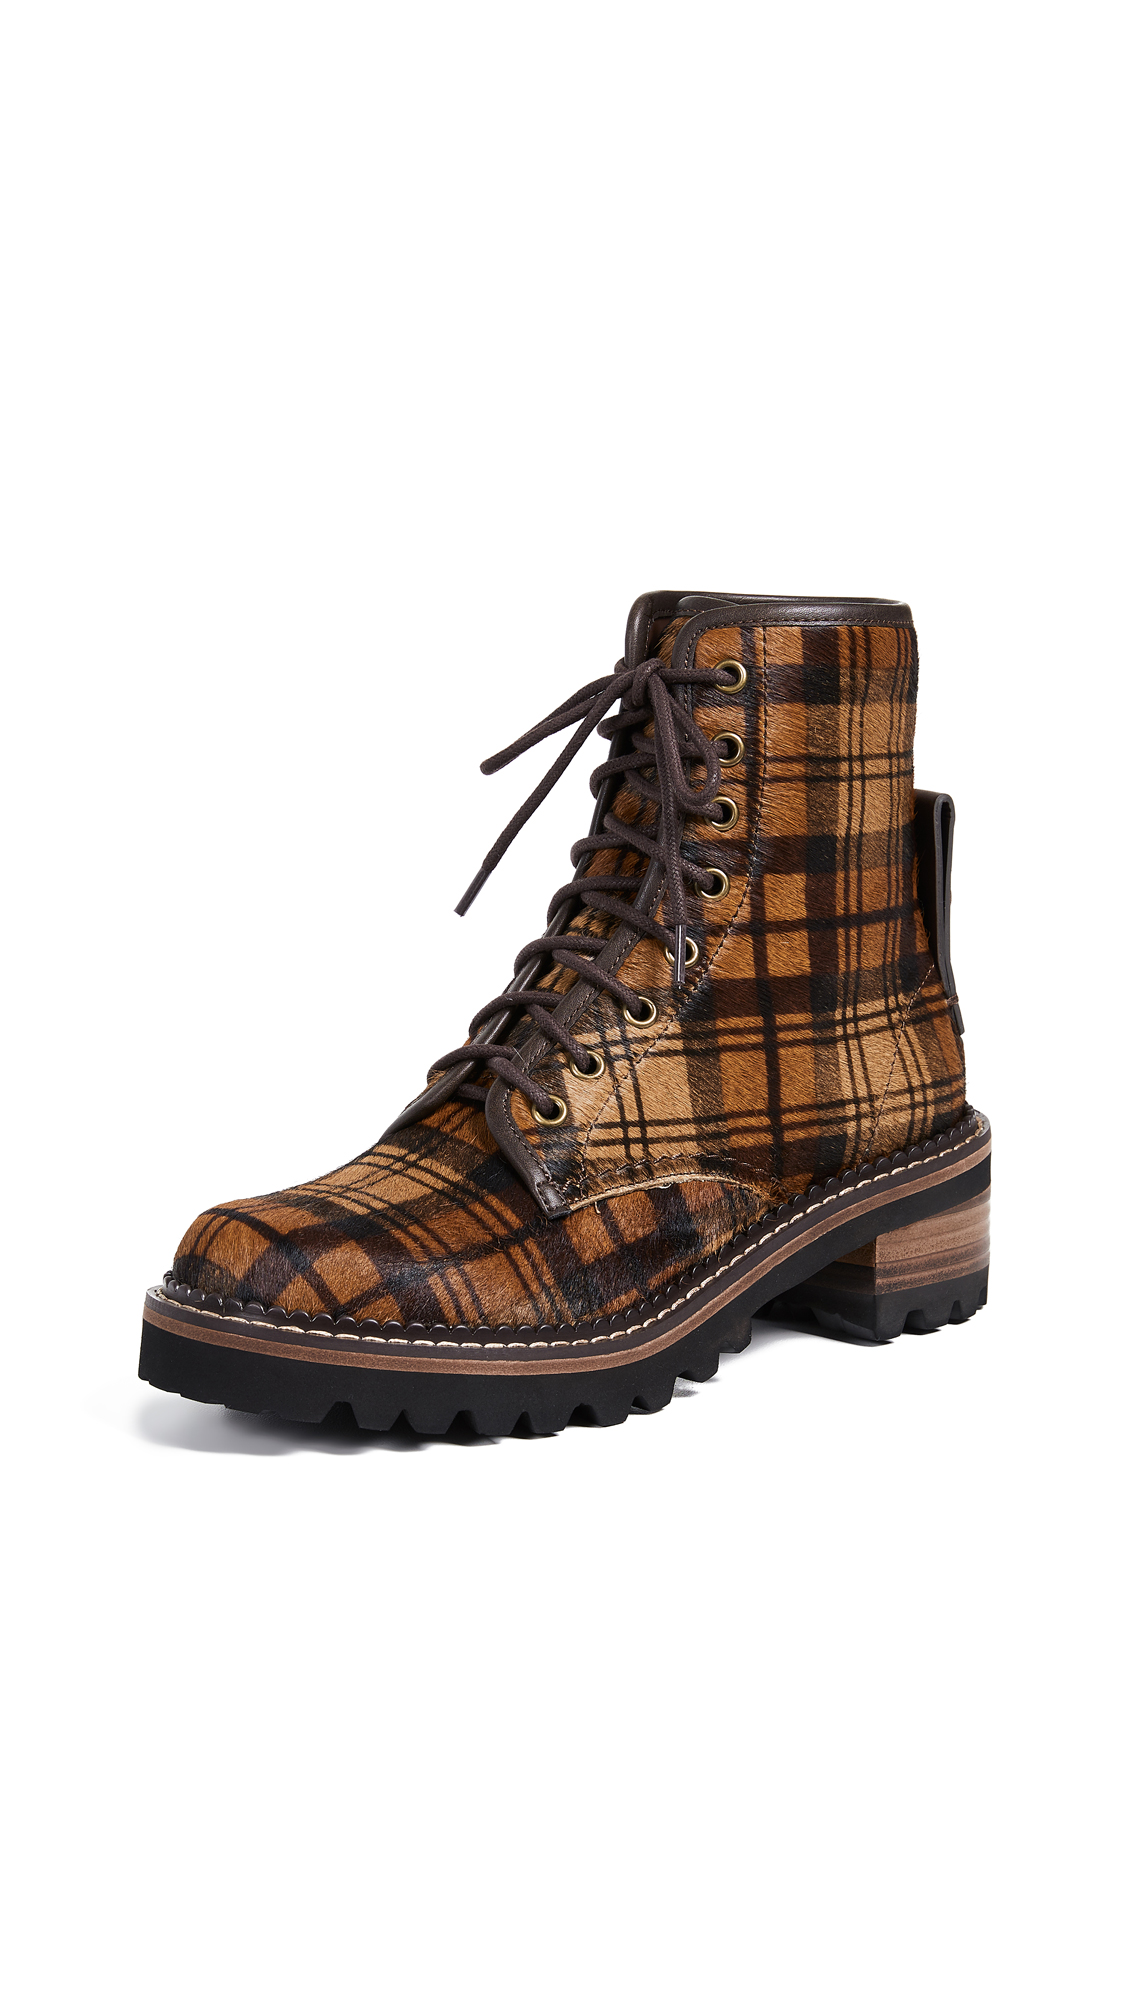 See by Chloe Marta Lace Up Boots - Print Tartan Brown/Noisette